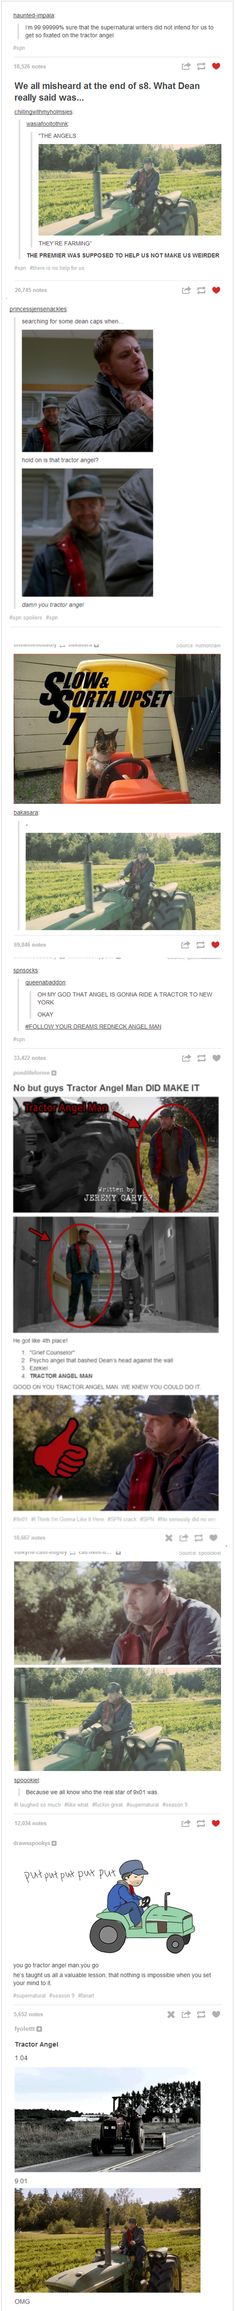 Crazy Redneck Tractor Angel - I don't care if you've never even seen the show, this is freaking hilarious